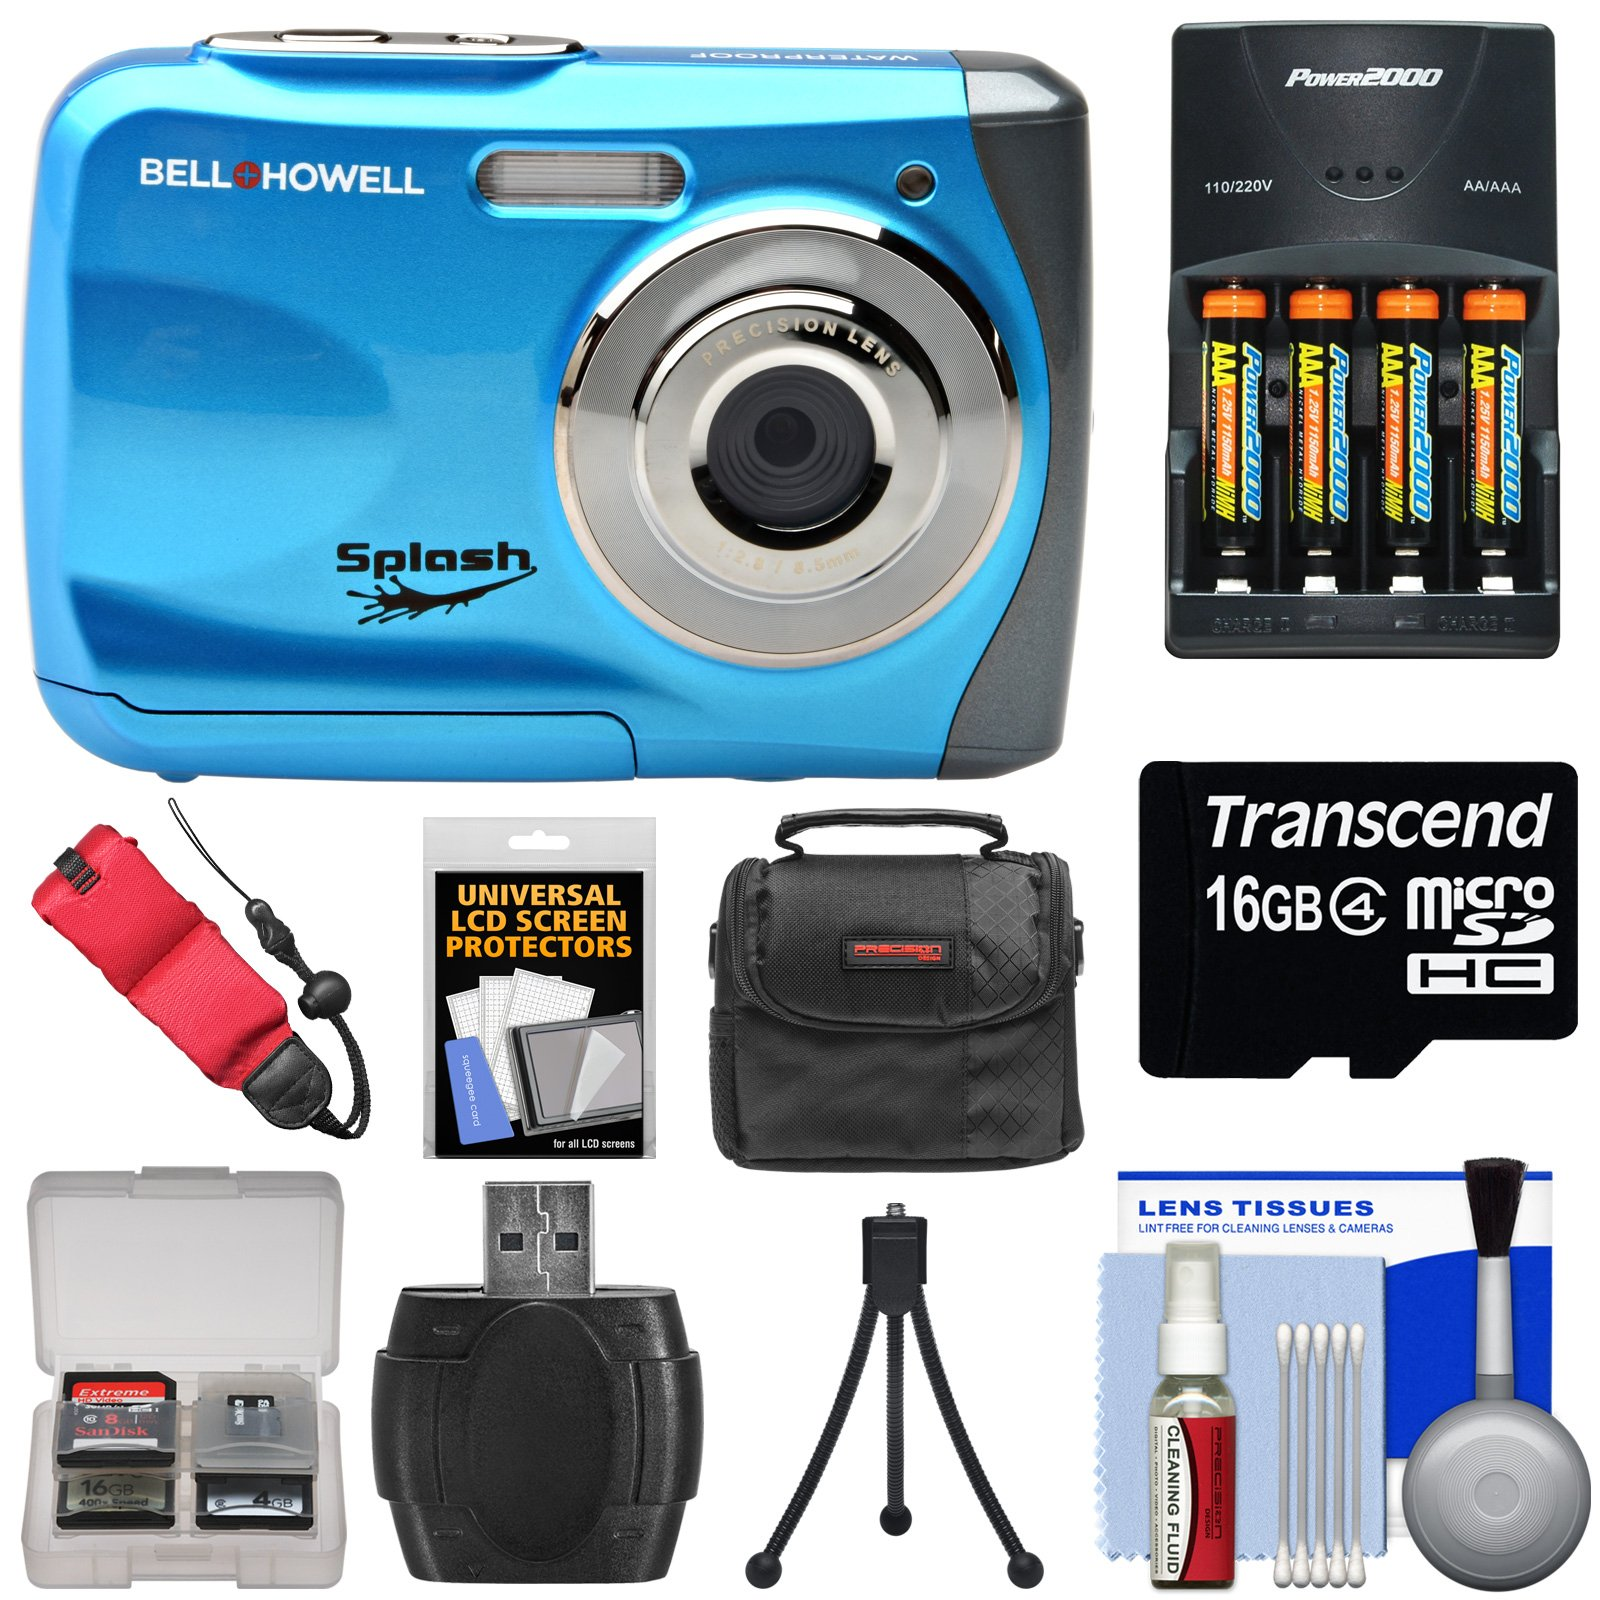 Bell & Howell Splash WP7 Waterproof Digital Camera (Blue) with Batteries & Charger + 16GB Card + Case + Kit